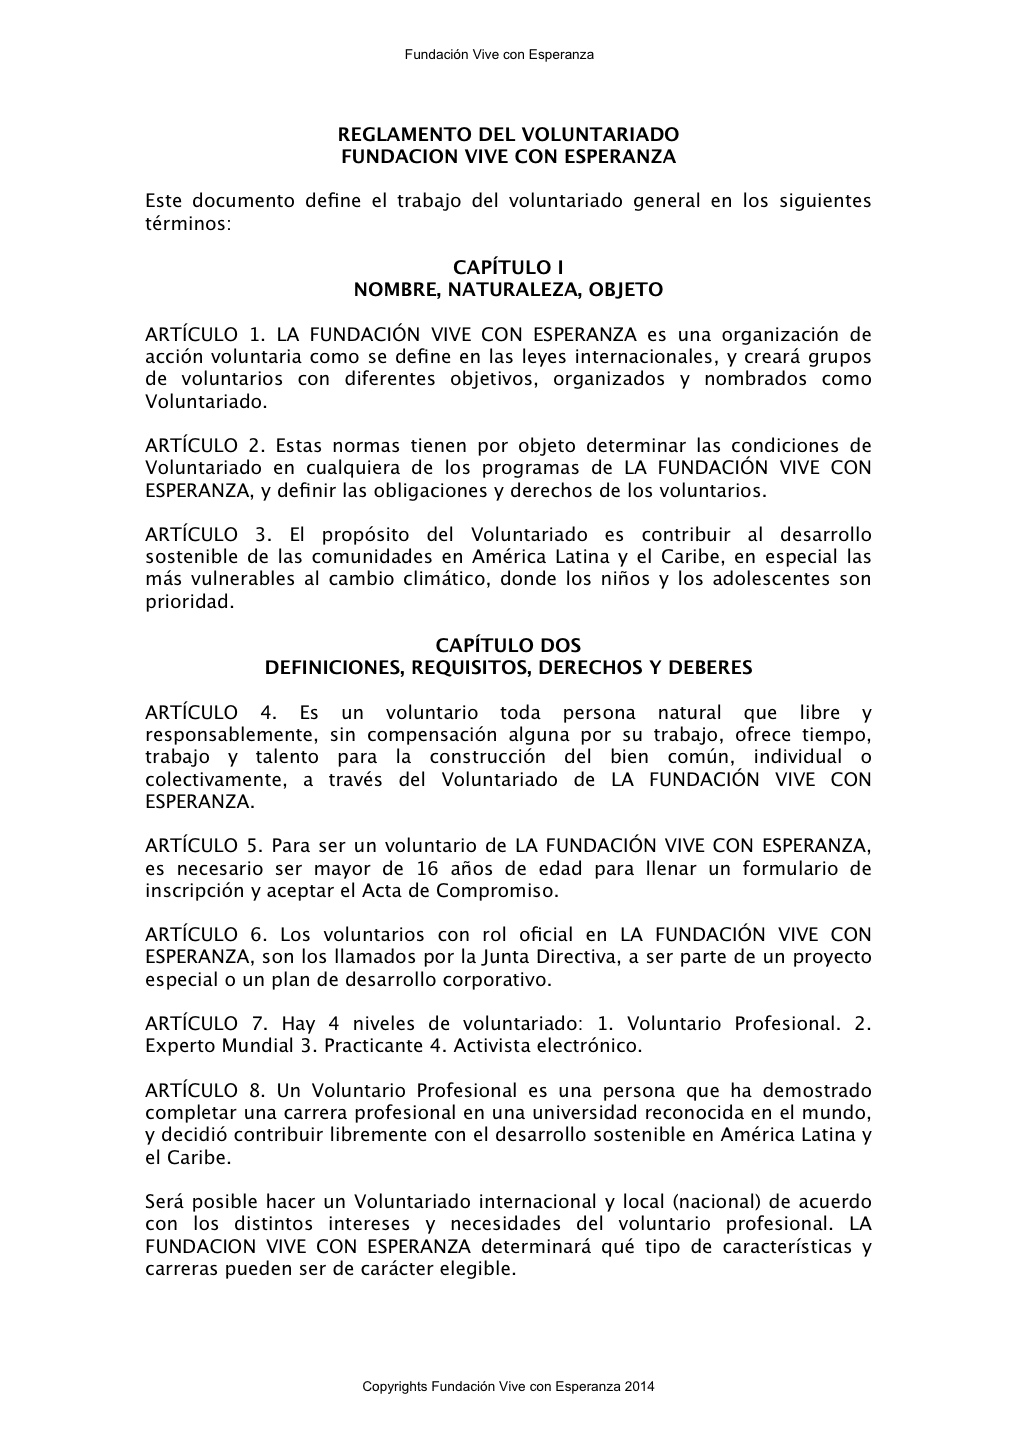 Tiempo Libre Definicion Reglamento Del Voluntariado Español Pages 1 4 Text Version